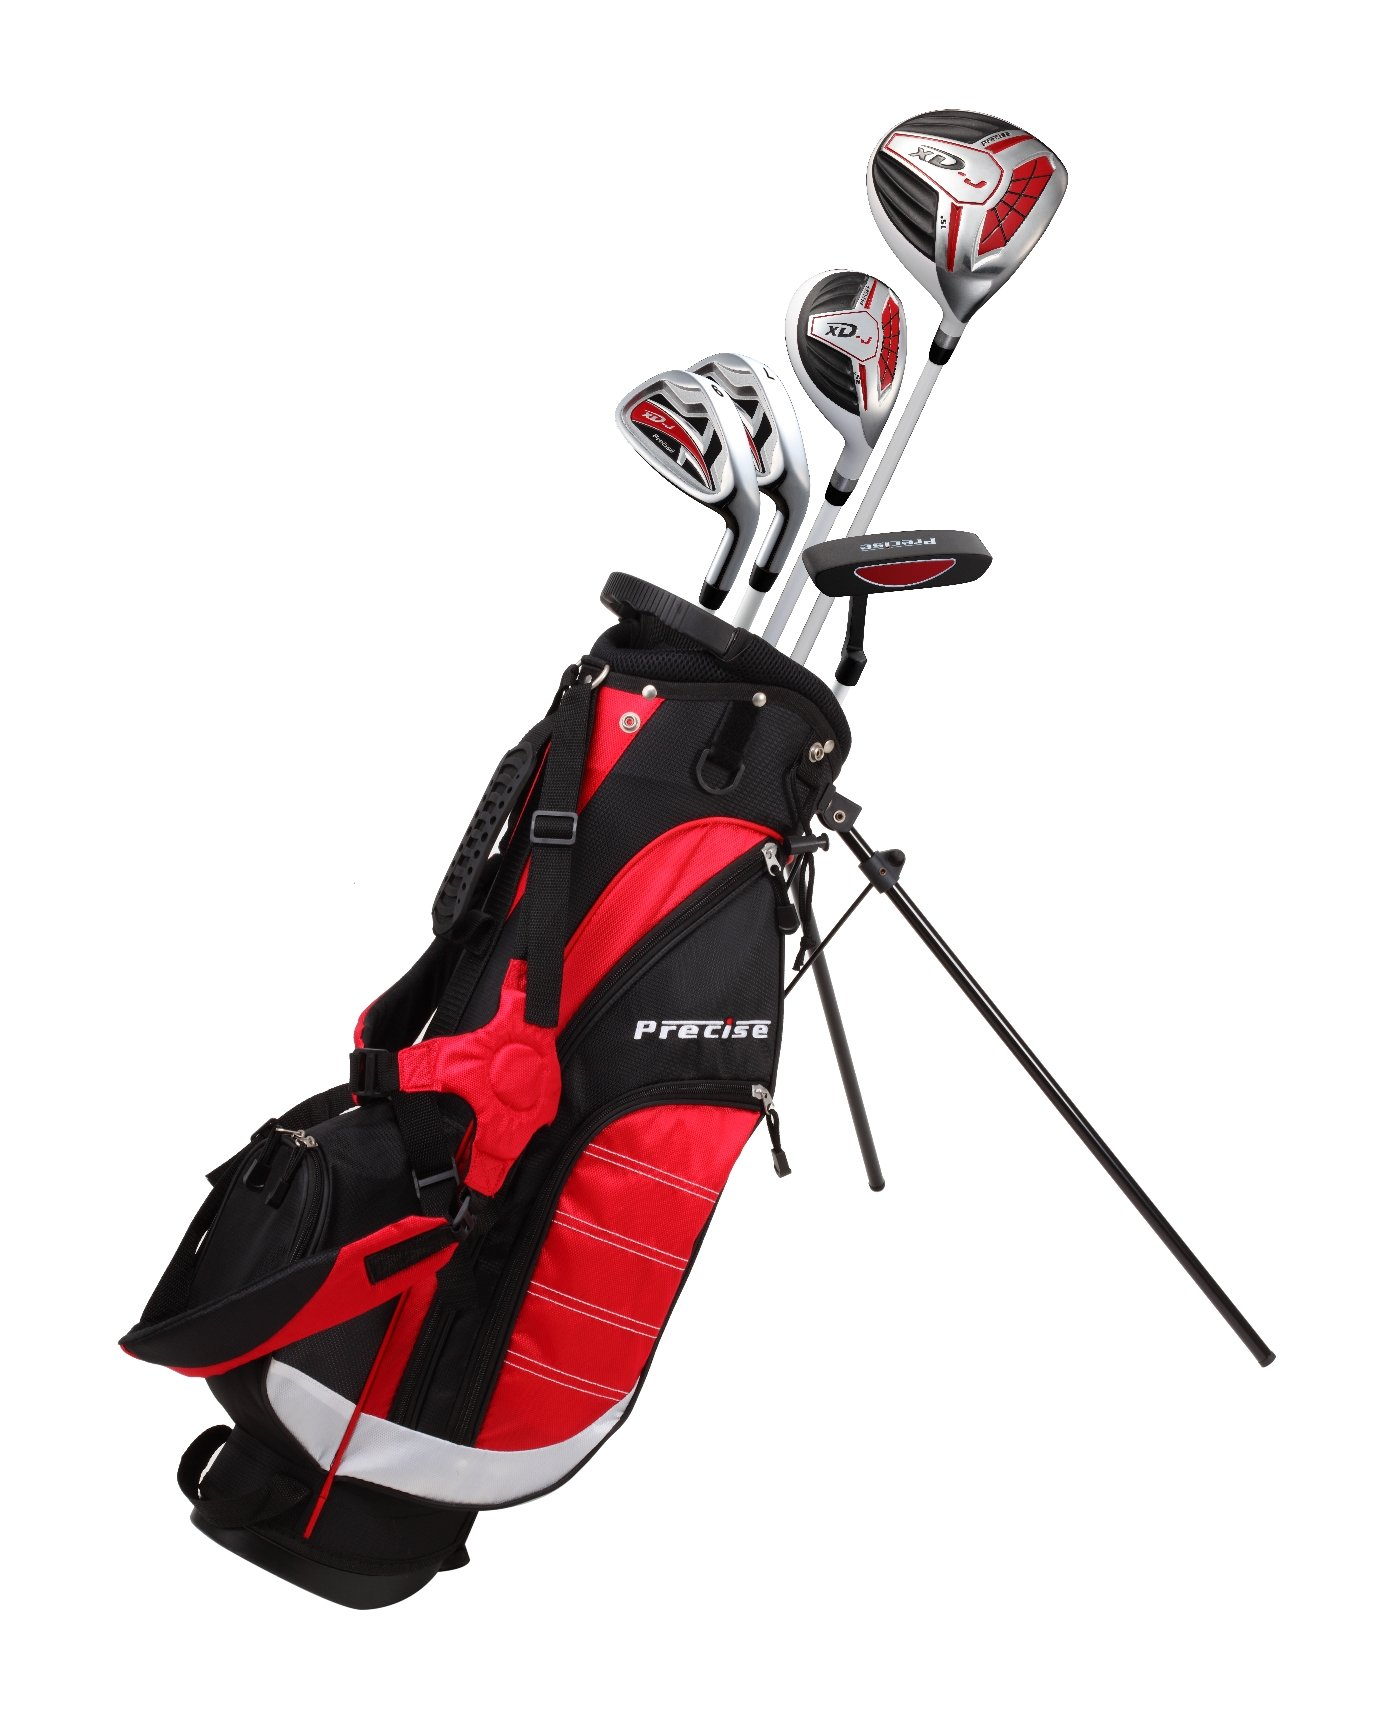 Precise XD-J Junior Complete Golf Club Set for Children Kids - 3 Age Groups Boys & Girls - Right Hand & Left Hand! (Red Ages 6-8, Left Hand)